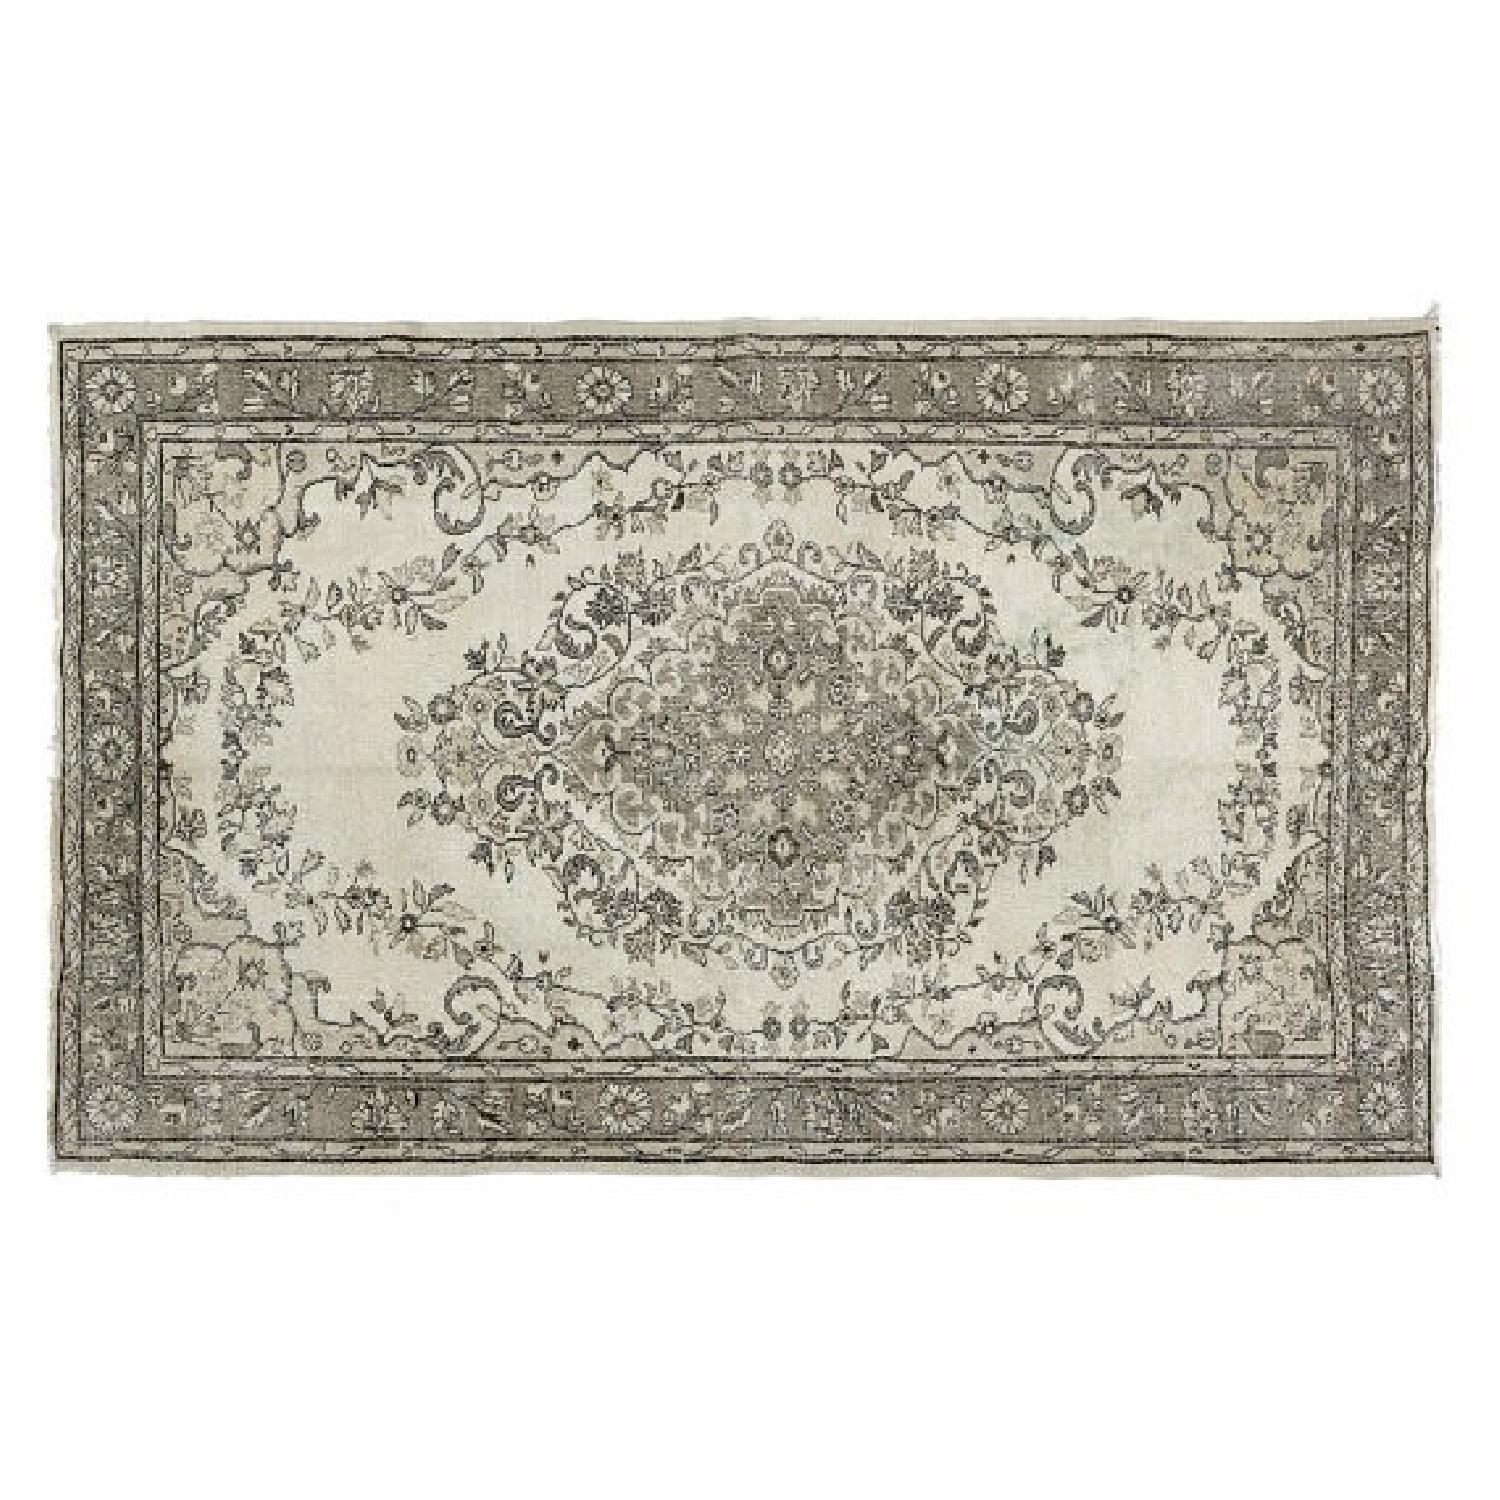 Vintage Turkish Hand-Woven Overdyed  Rug in Grey - image-1